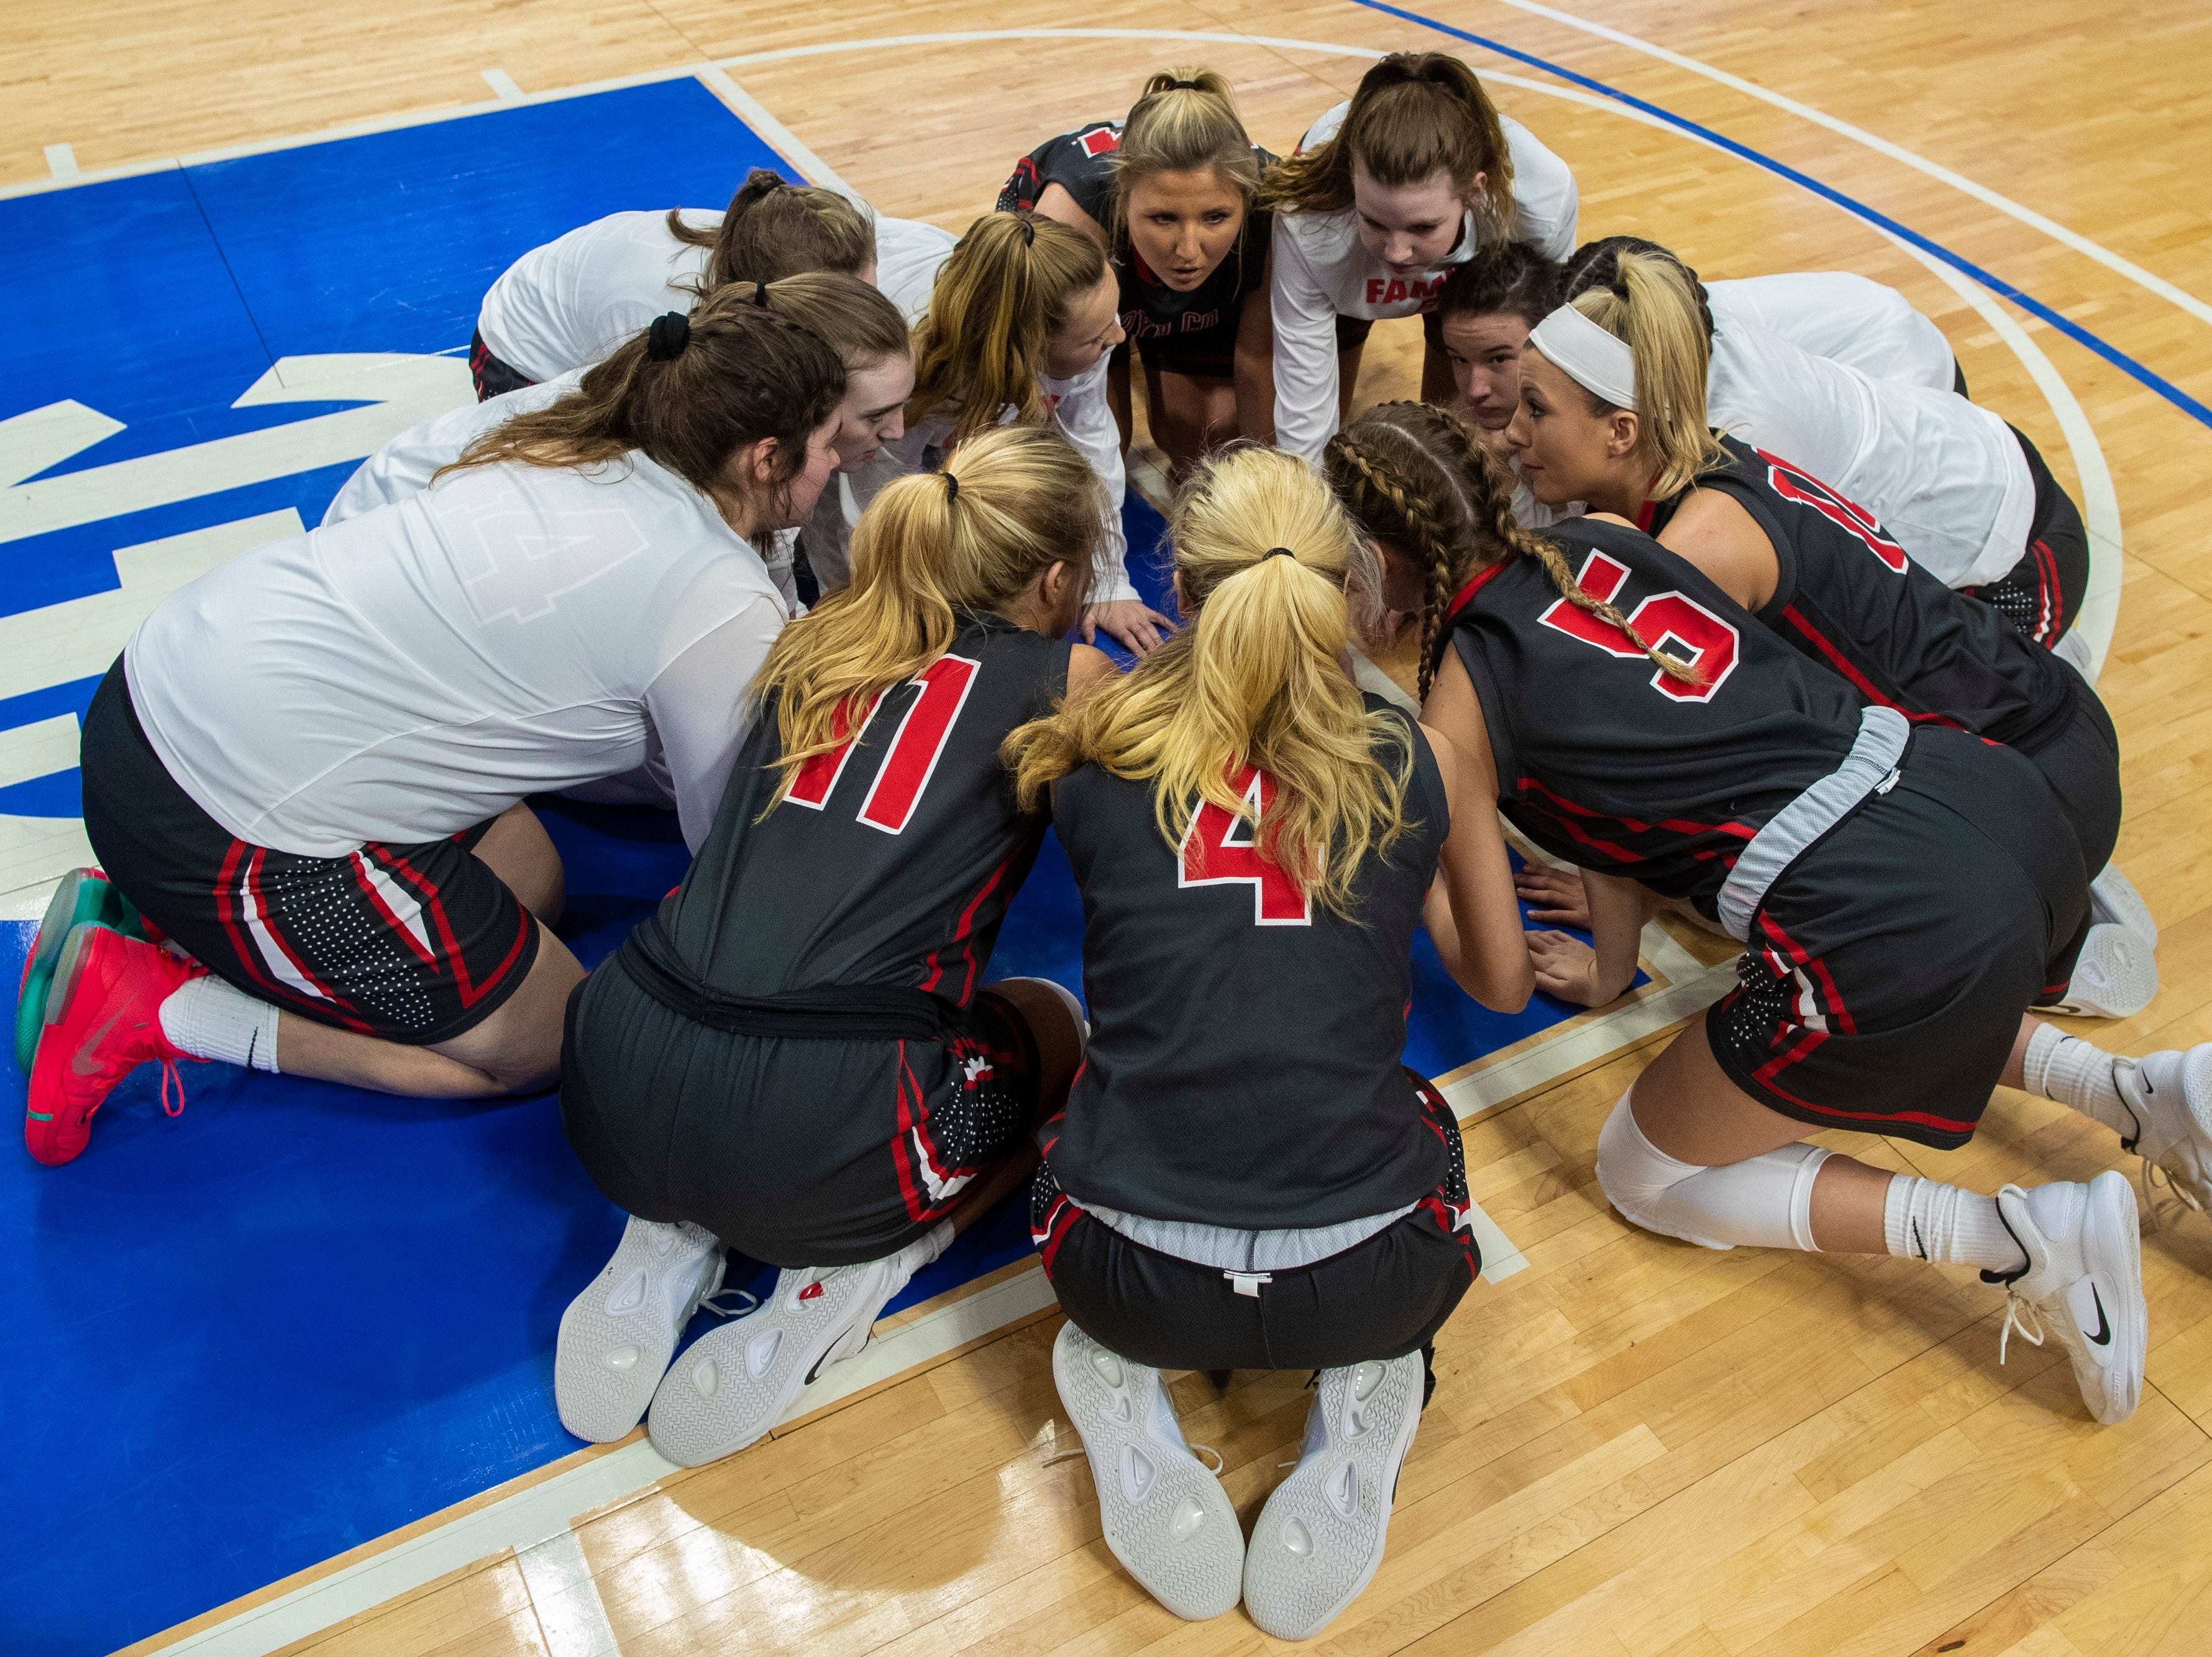 Boyd County players huddle at the start of the game as Boyd County took on Louisville Male in the KHSAA state basketball tournament in Rupp Arena. Male eliminated Boyd County 74-56. March 14, 2019